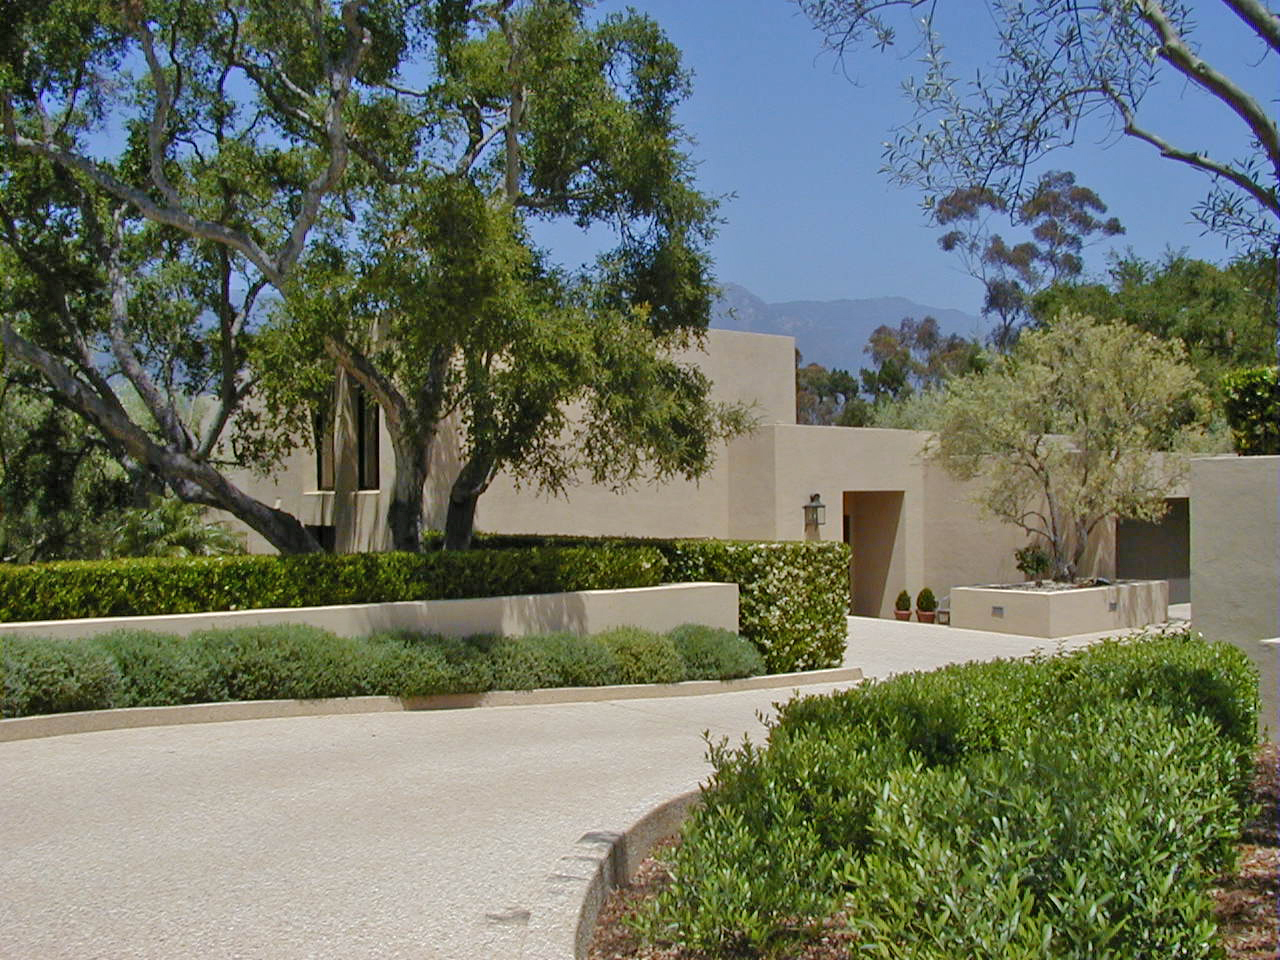 Jelinda, Santa Barbara Architects